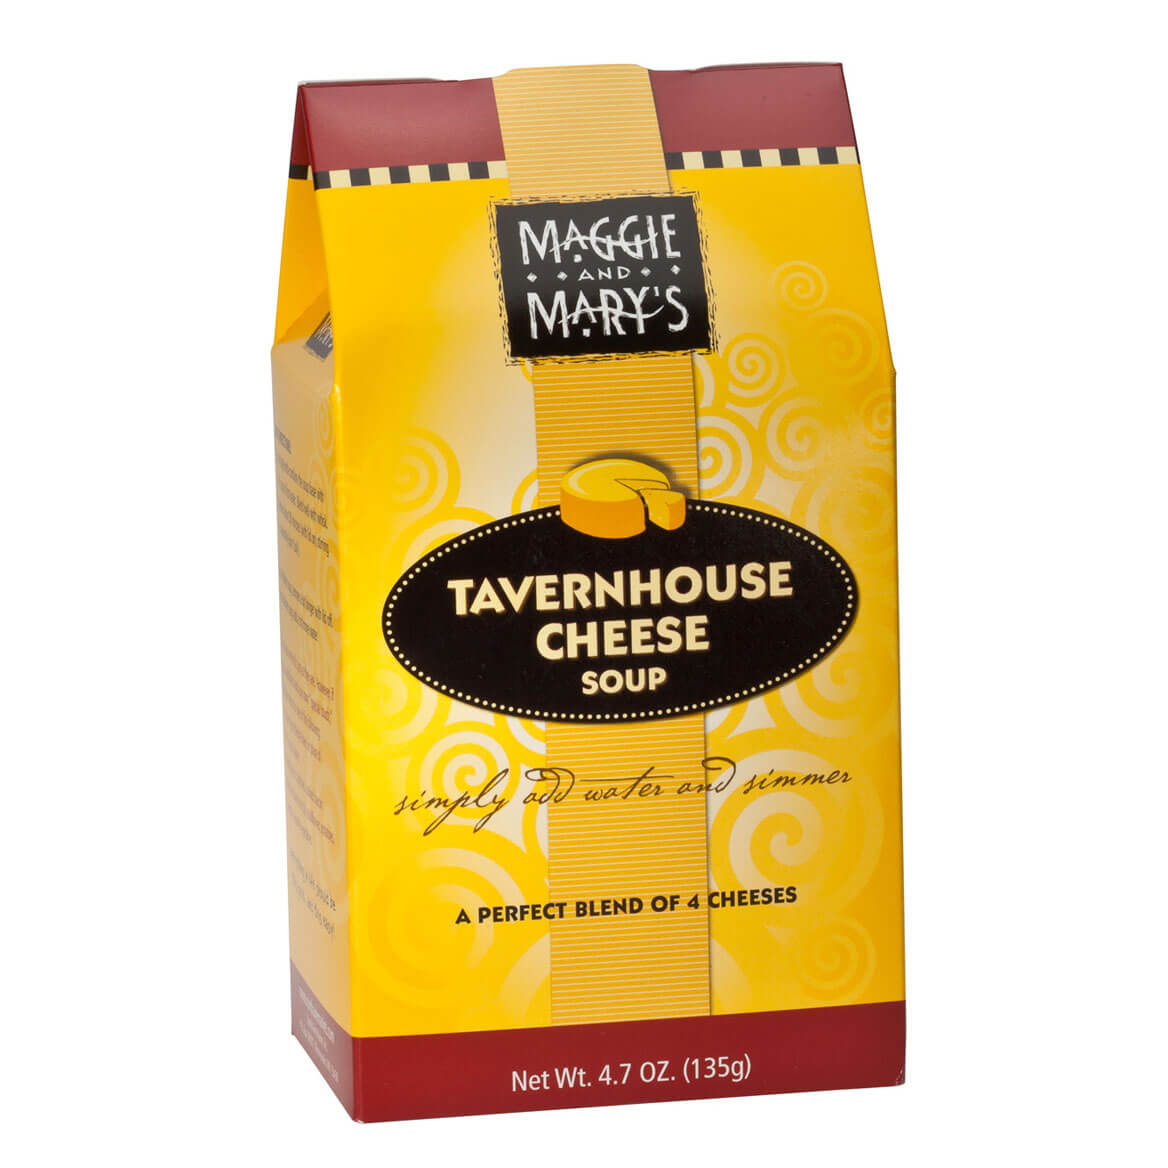 Tavernhouse Cheese Soup Mix